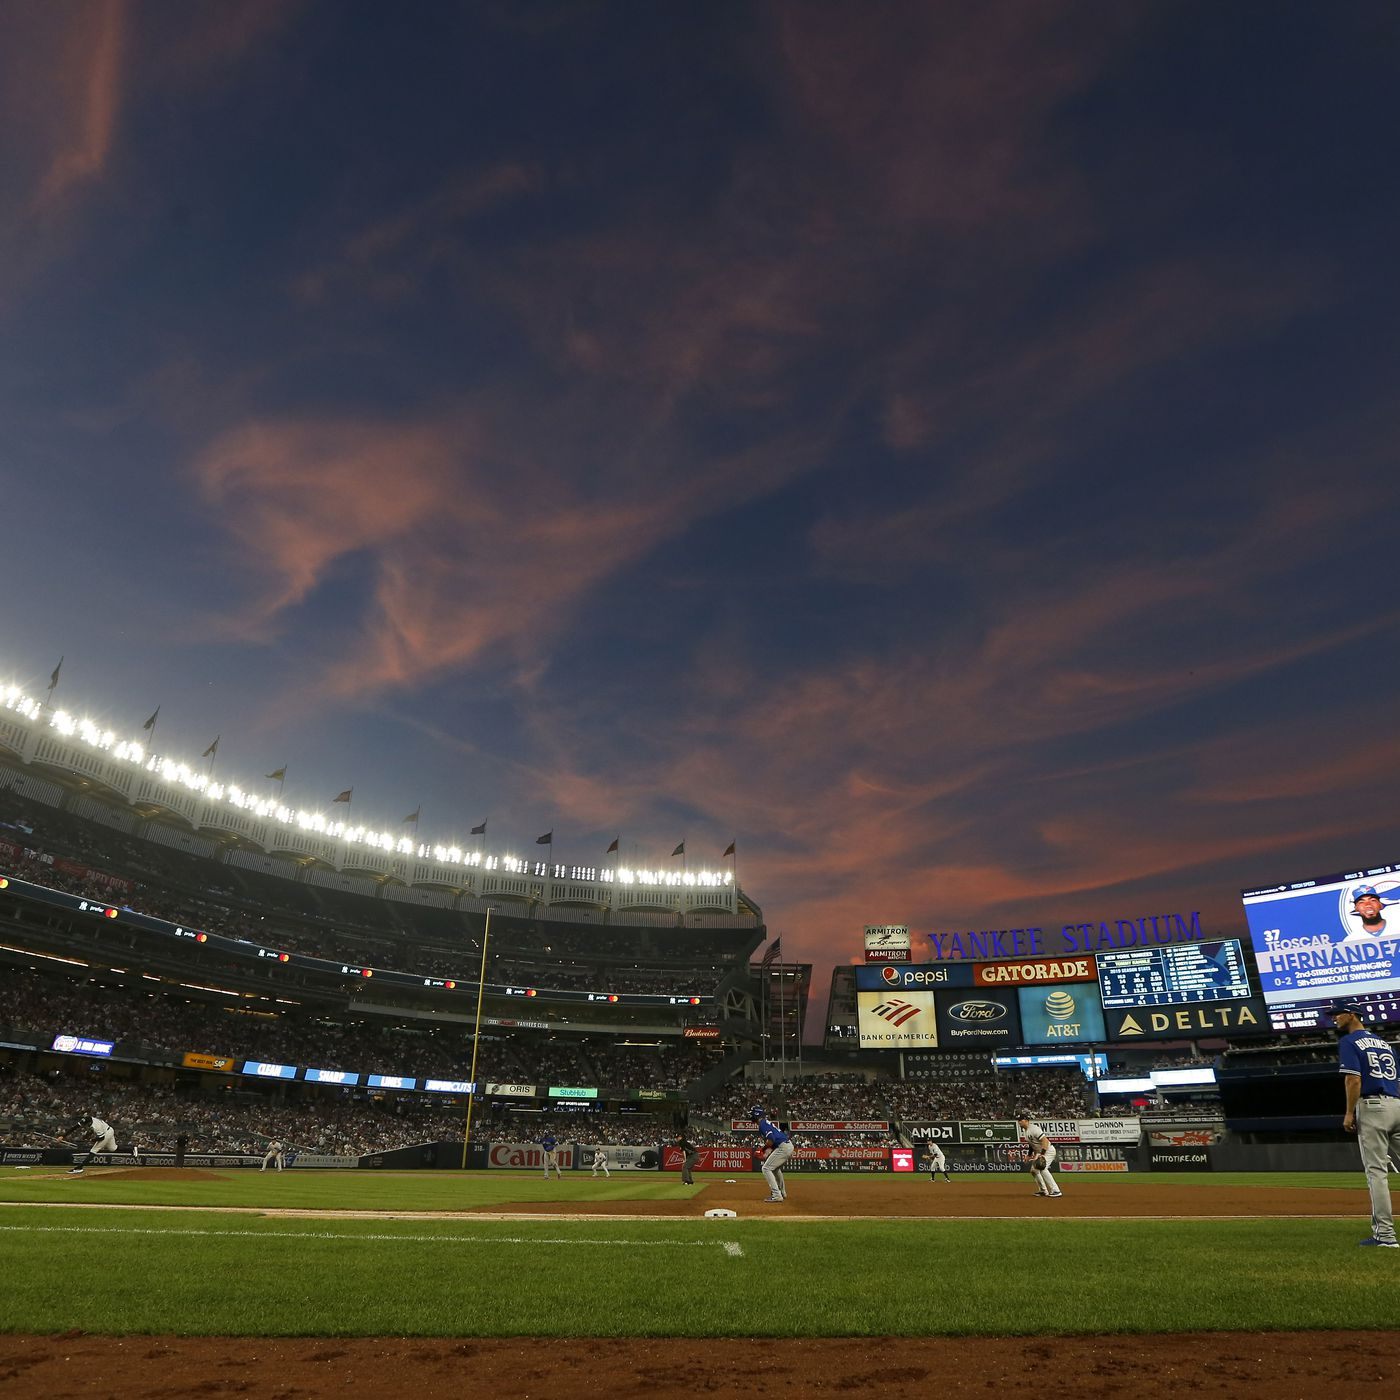 2019 Mlb Division Series Day 2 Twins Vs Yankees Game 1